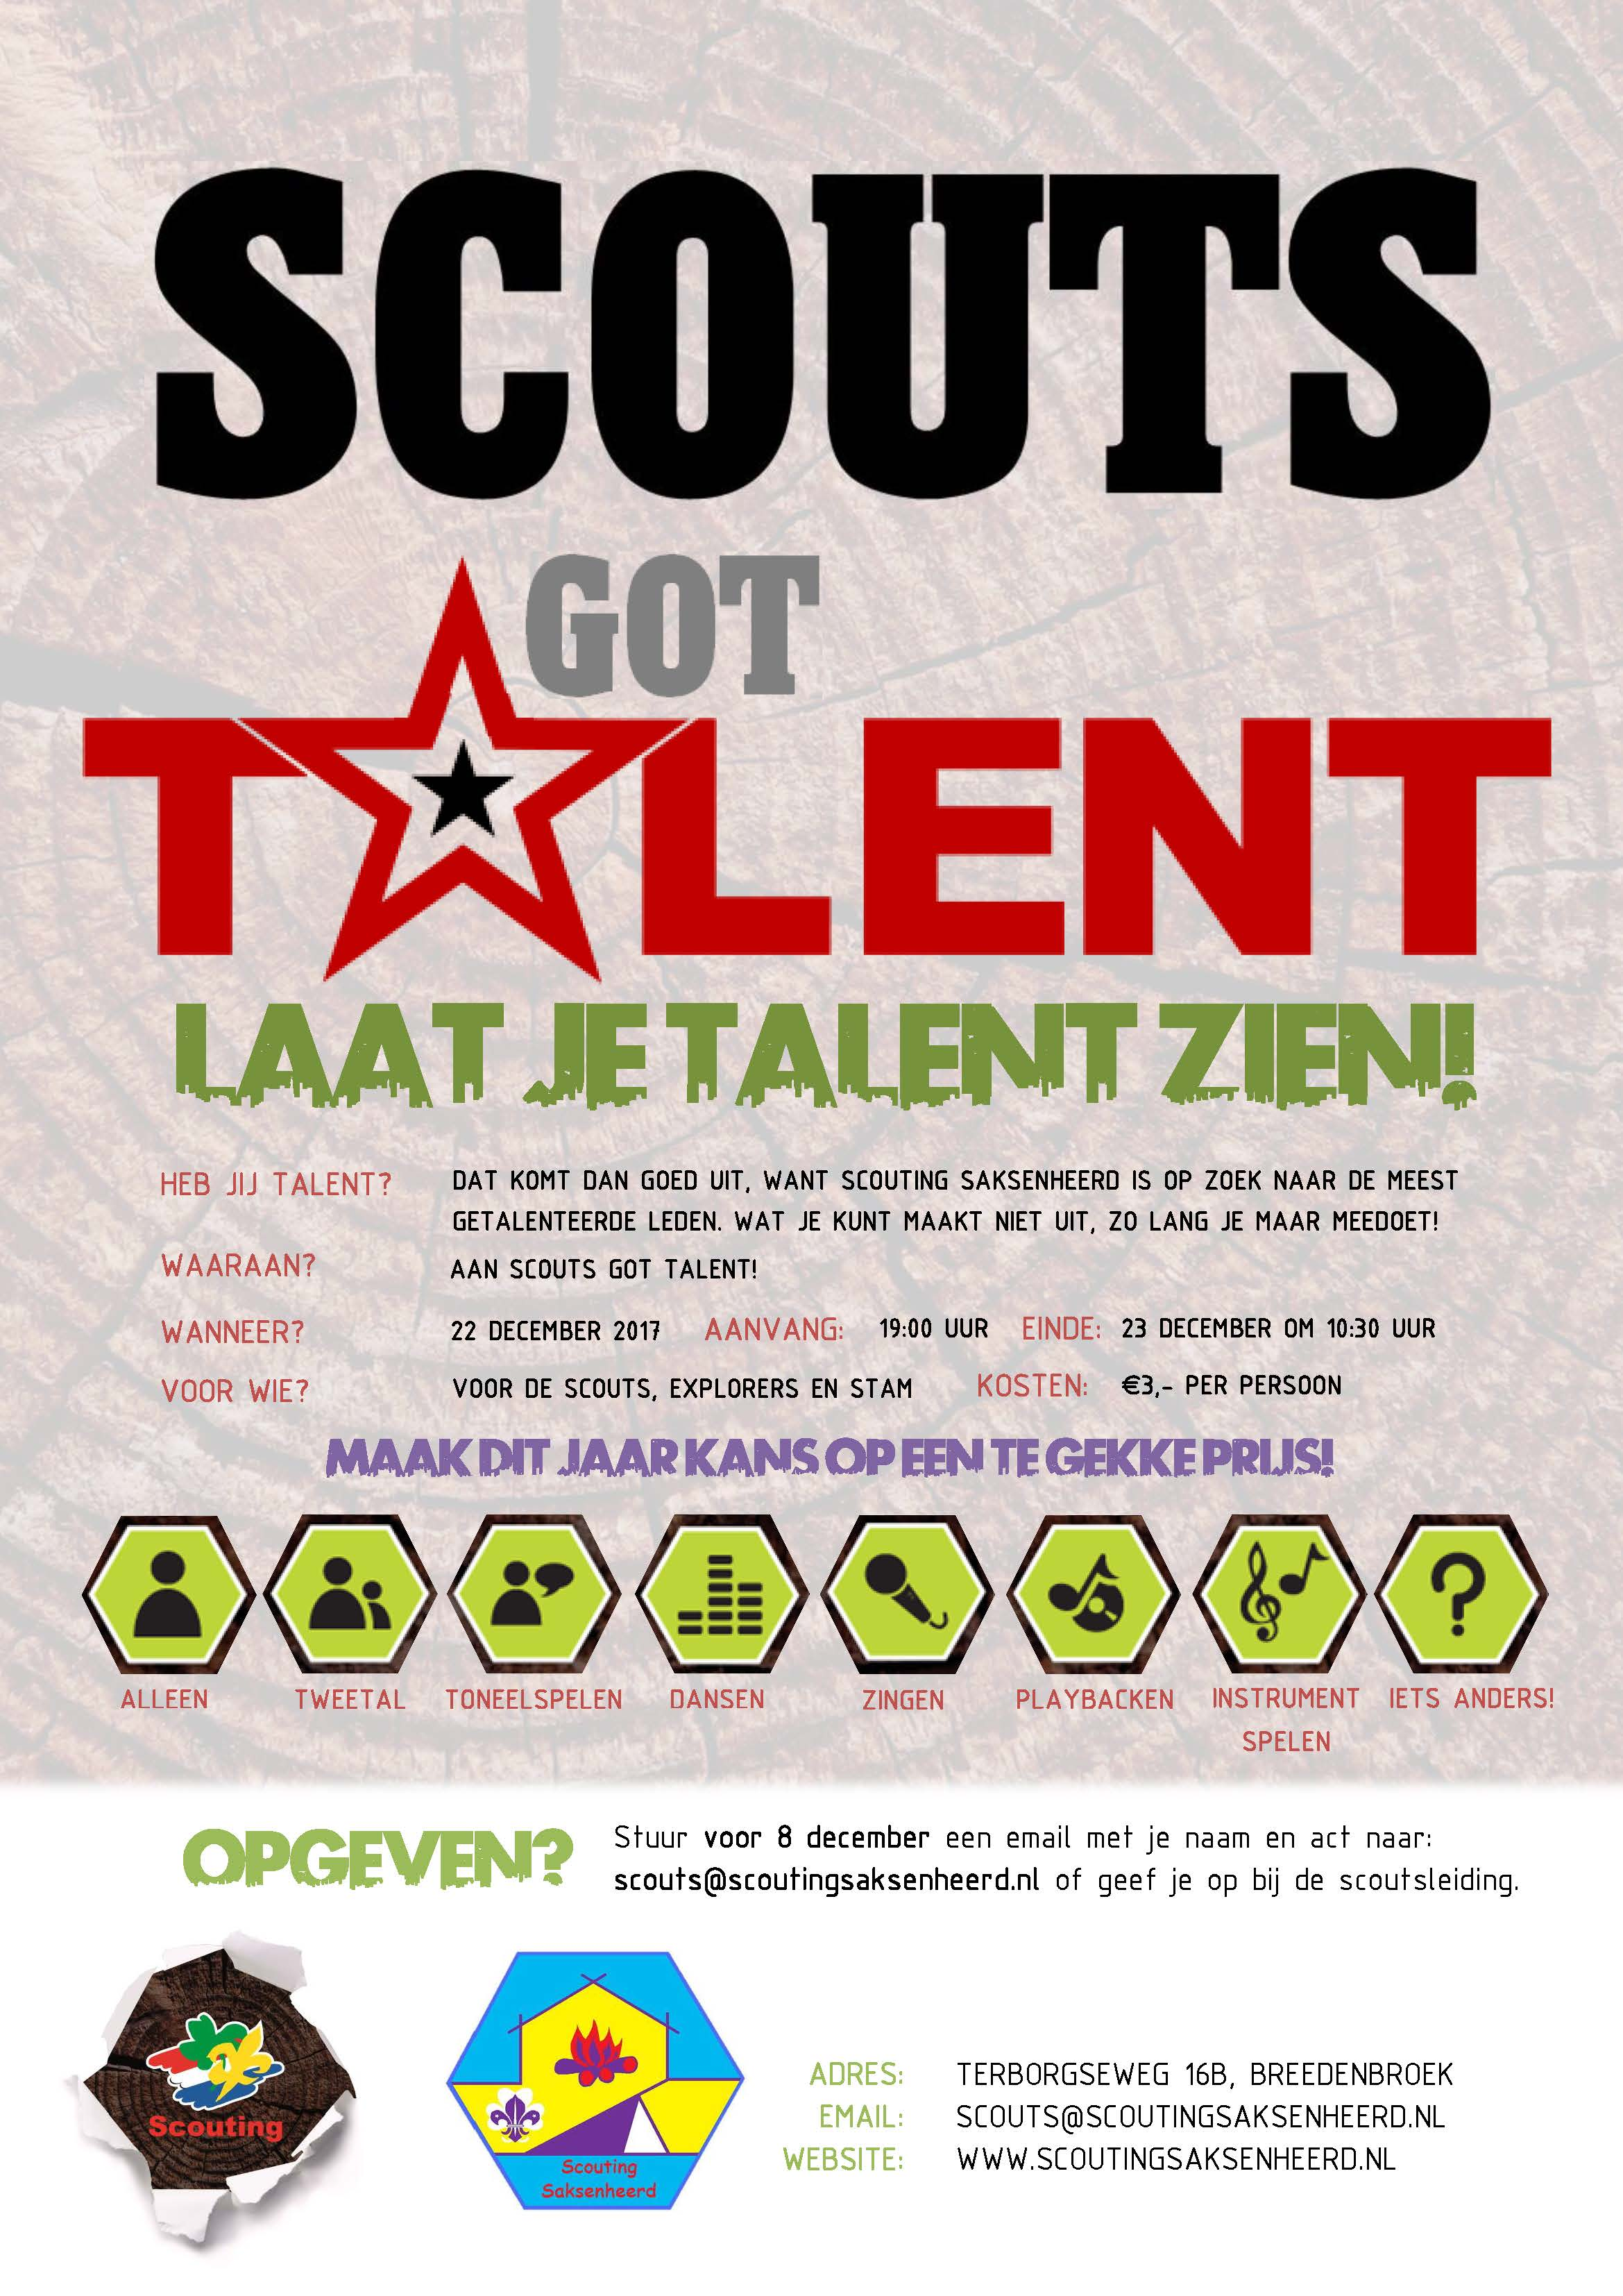 poster Scouts got talent